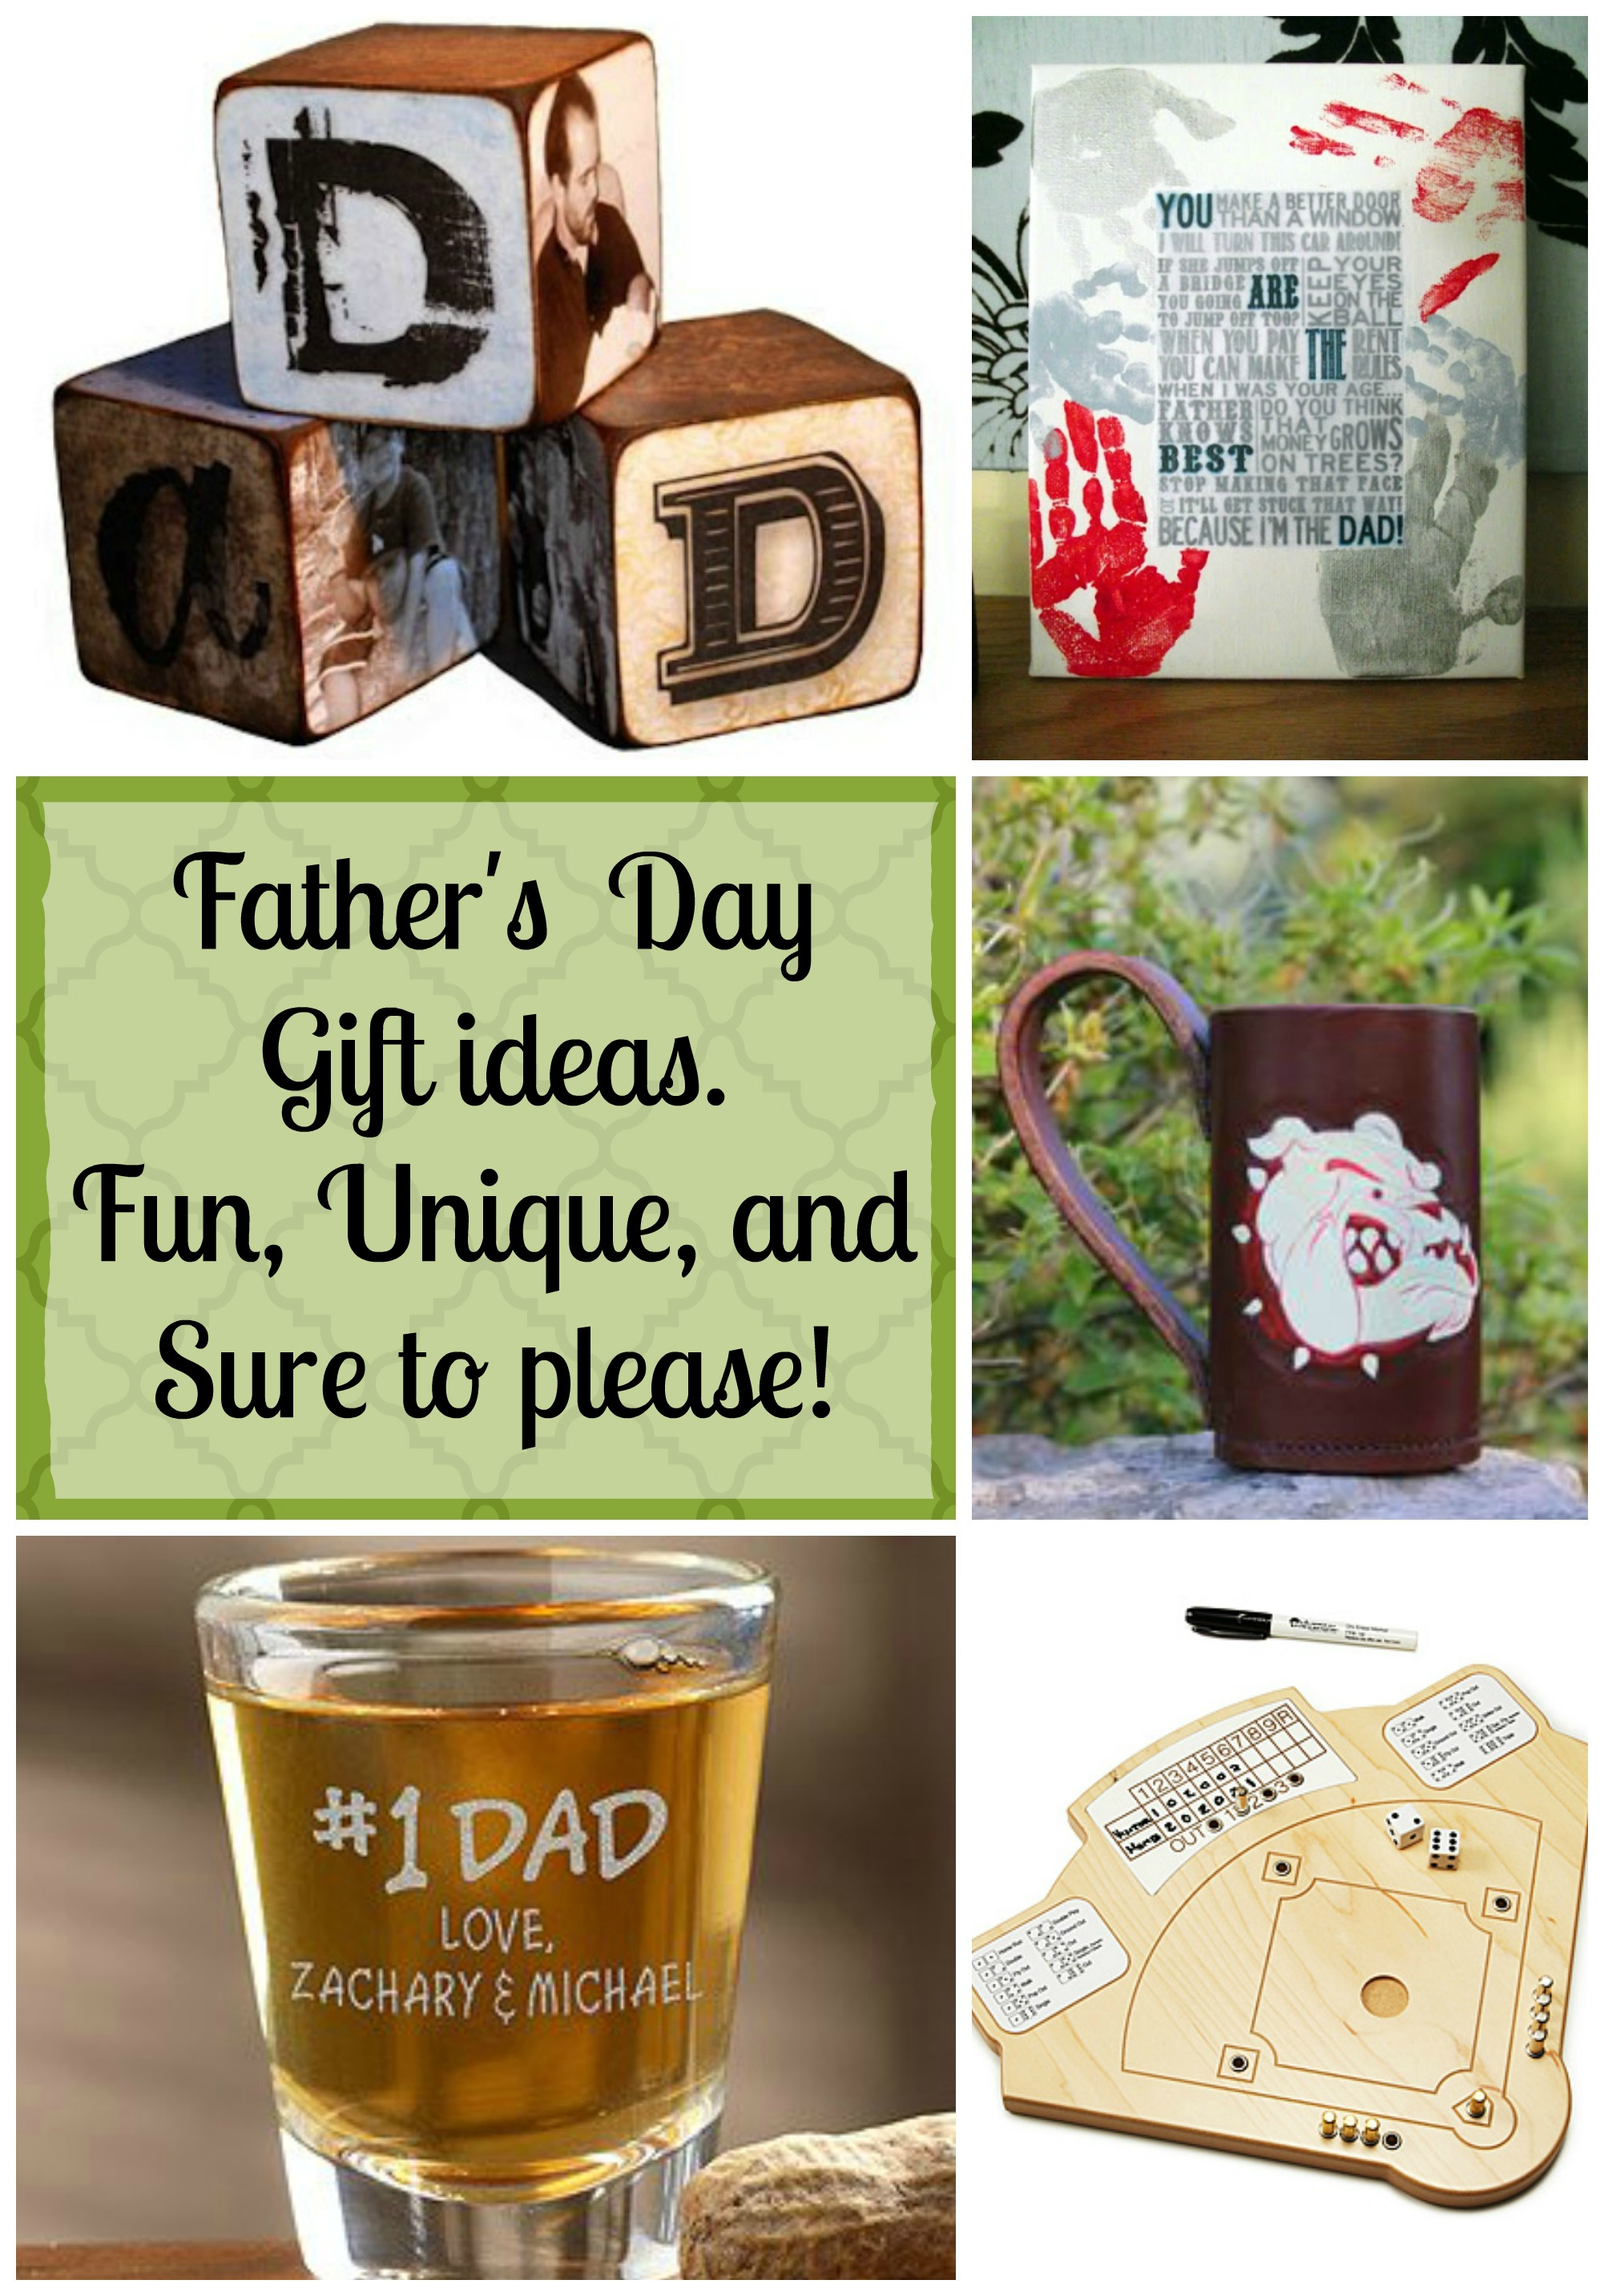 15 Great Father's Day Gift Ideas! - A Proverbs 31 Wife